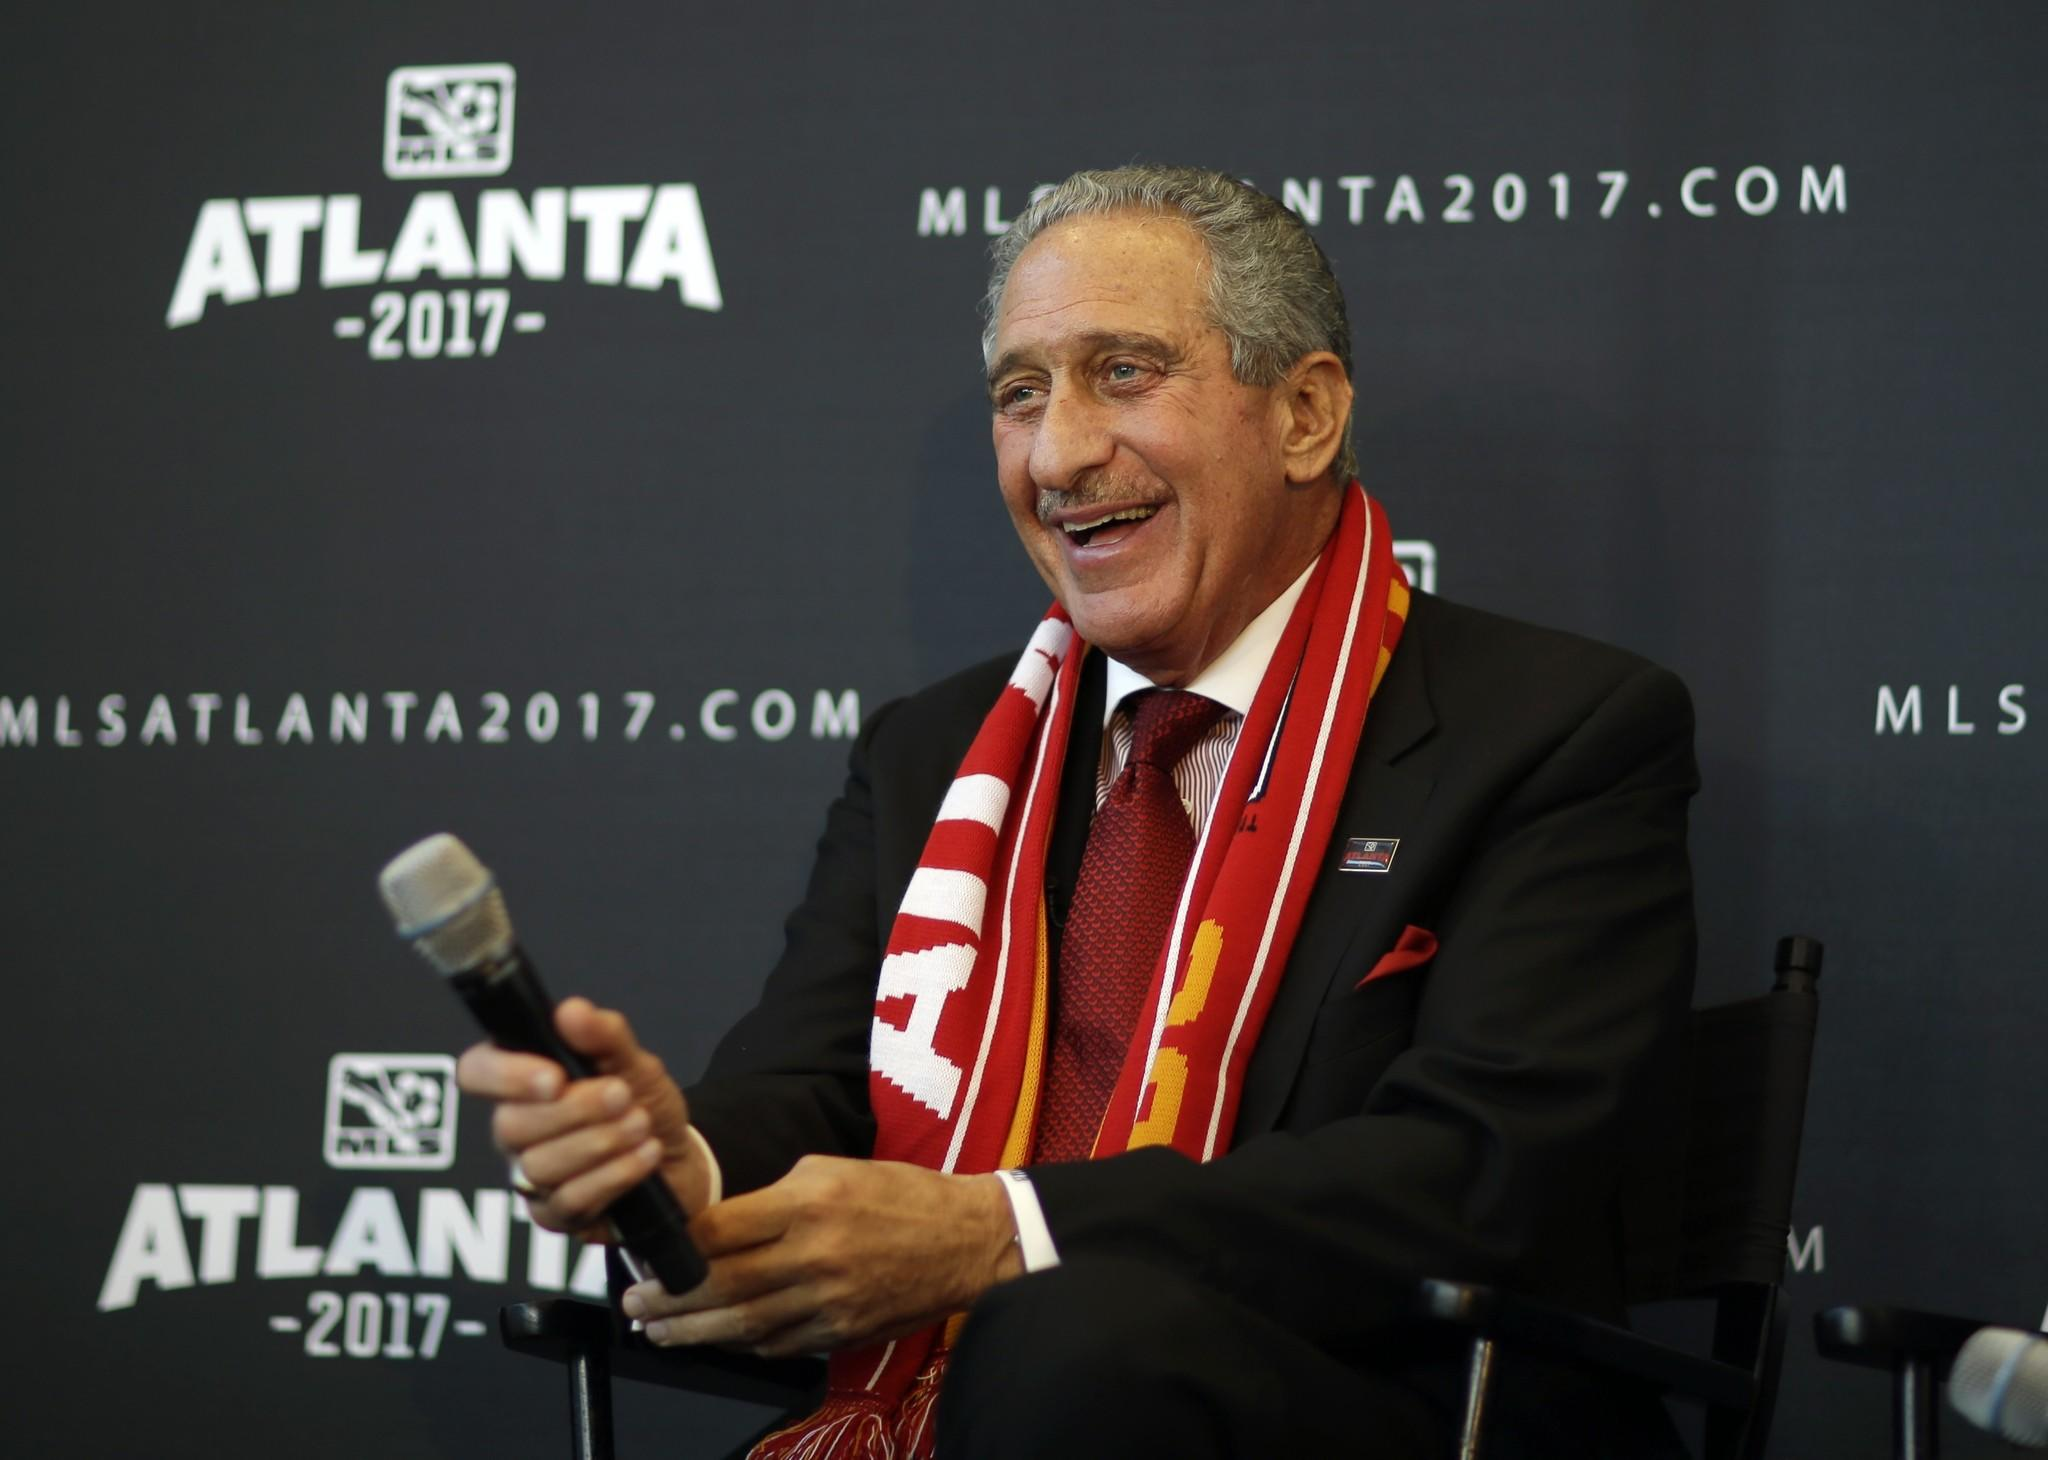 Arthur Blank, owner of the Atlanta Falcons, smiles during a news conference Wednesday to announce that Atlanta will receive a Major League Soccer franchise. Blank will be the new team's owner.